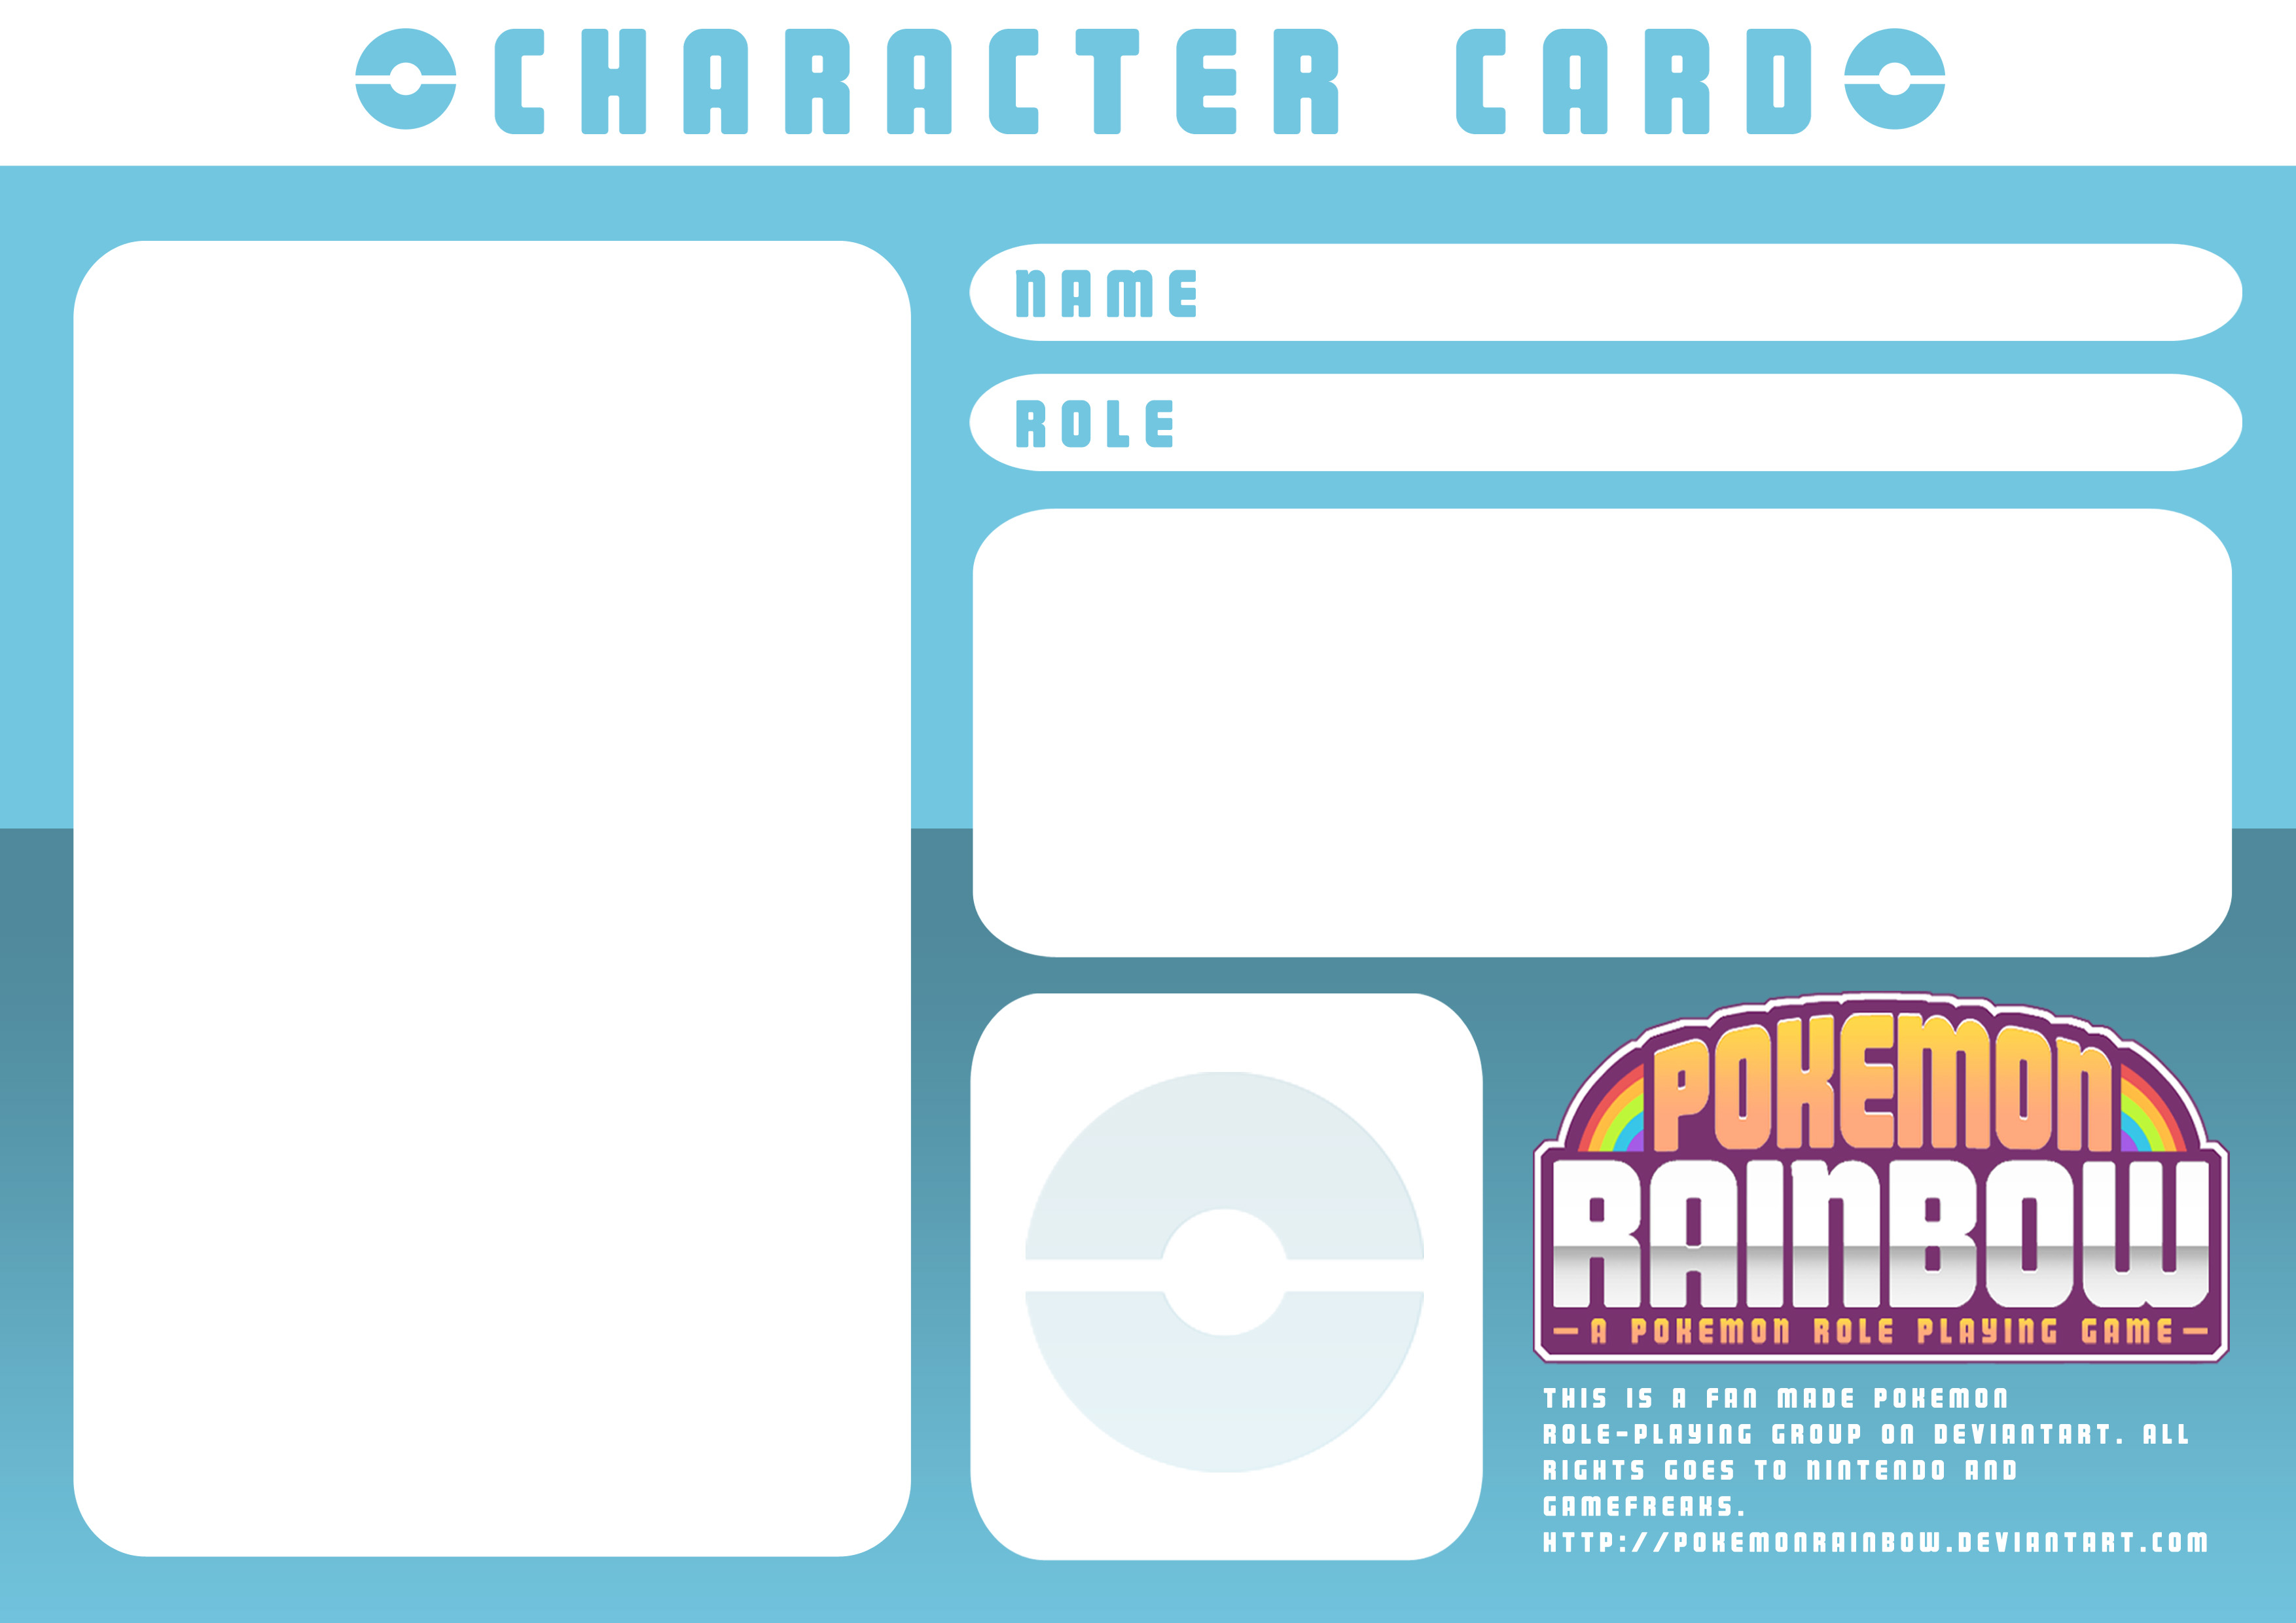 Character Card Templatery Spirit On Deviantart Throughout Pokemon Trainer Card Template